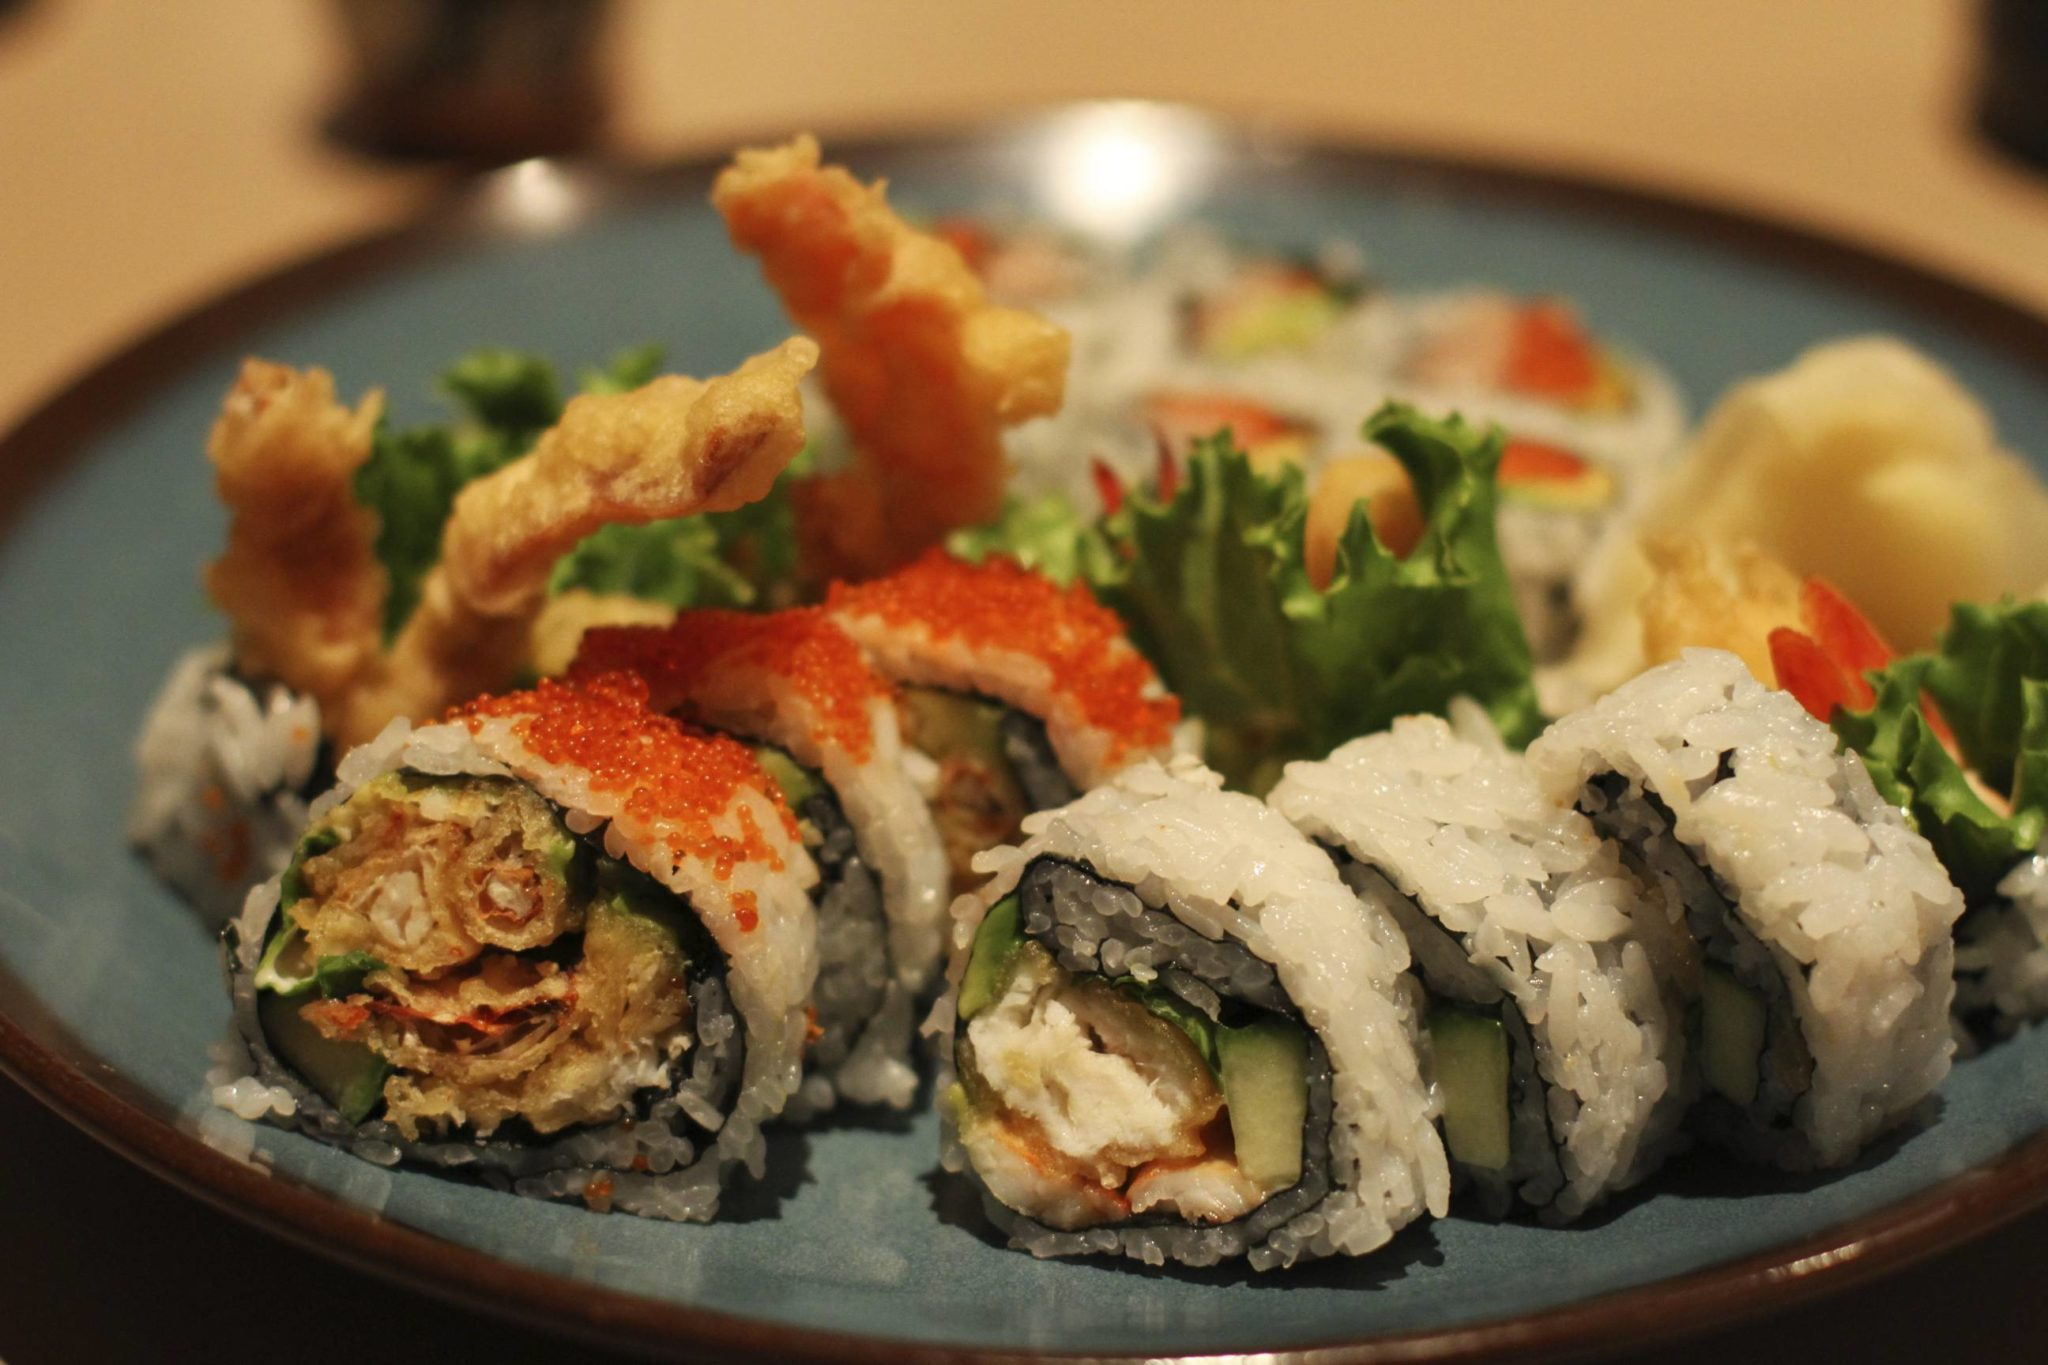 Michi - Spider Roll